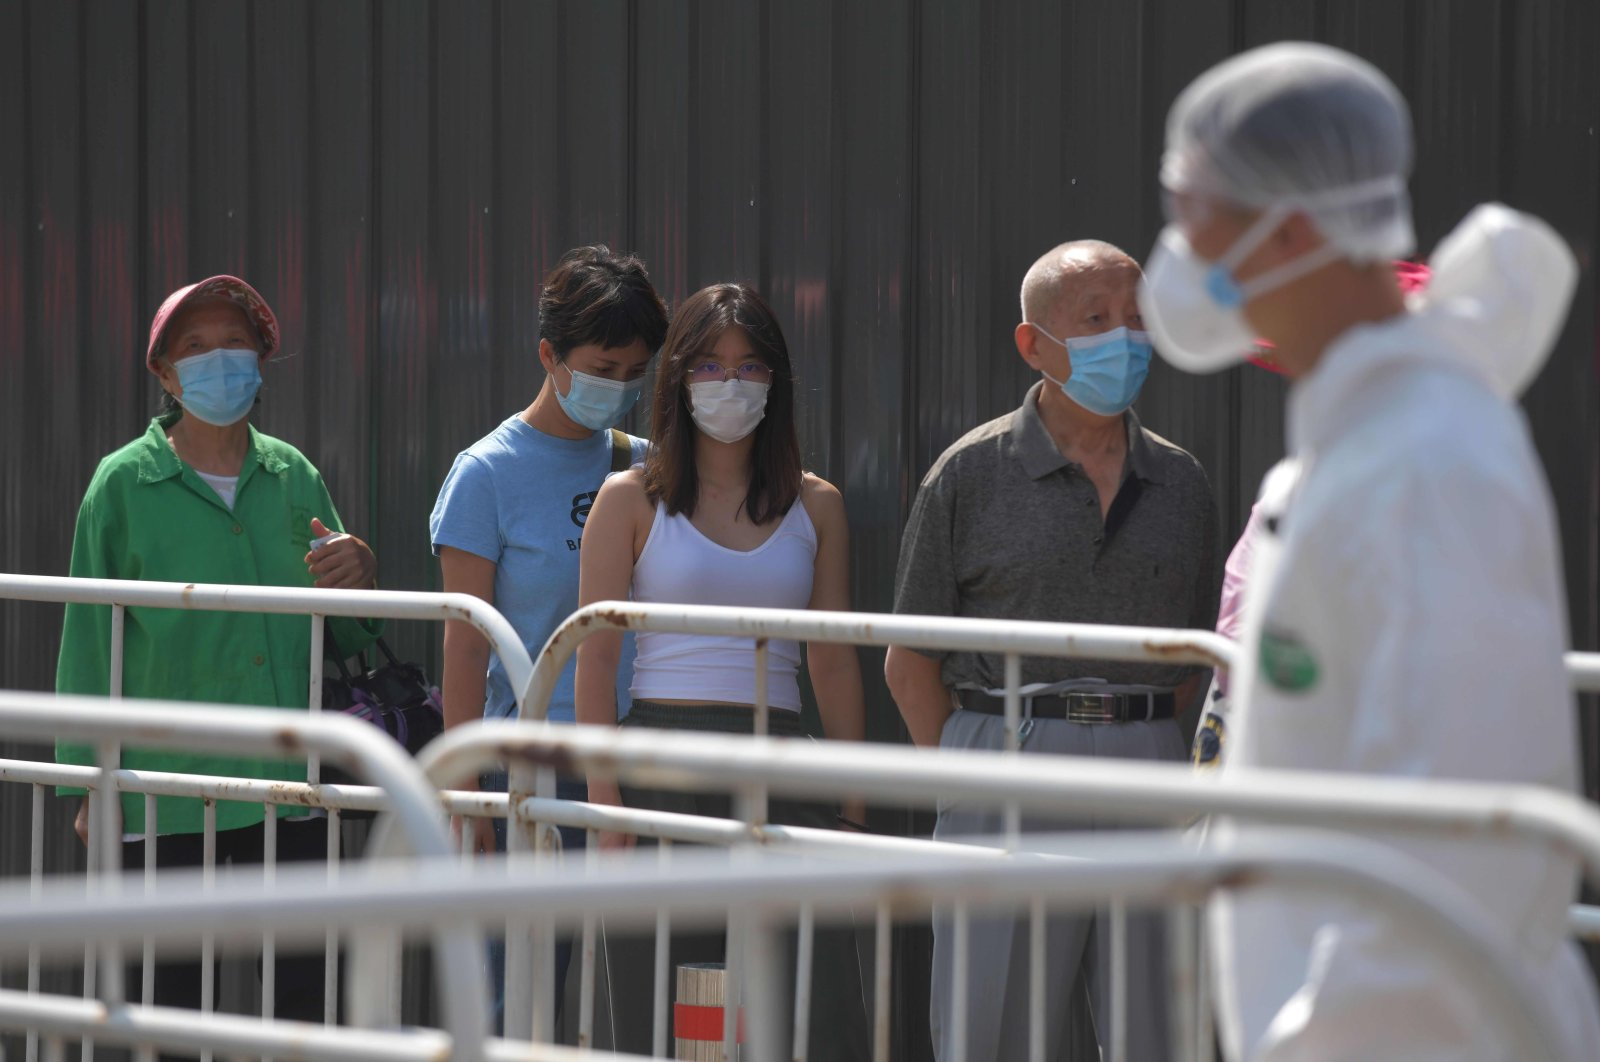 In this file photo people wait in line to undergo COVID-19 coronavirus swab tests at a testing station, Beijing, June 30, 2020. (AFP Photo)